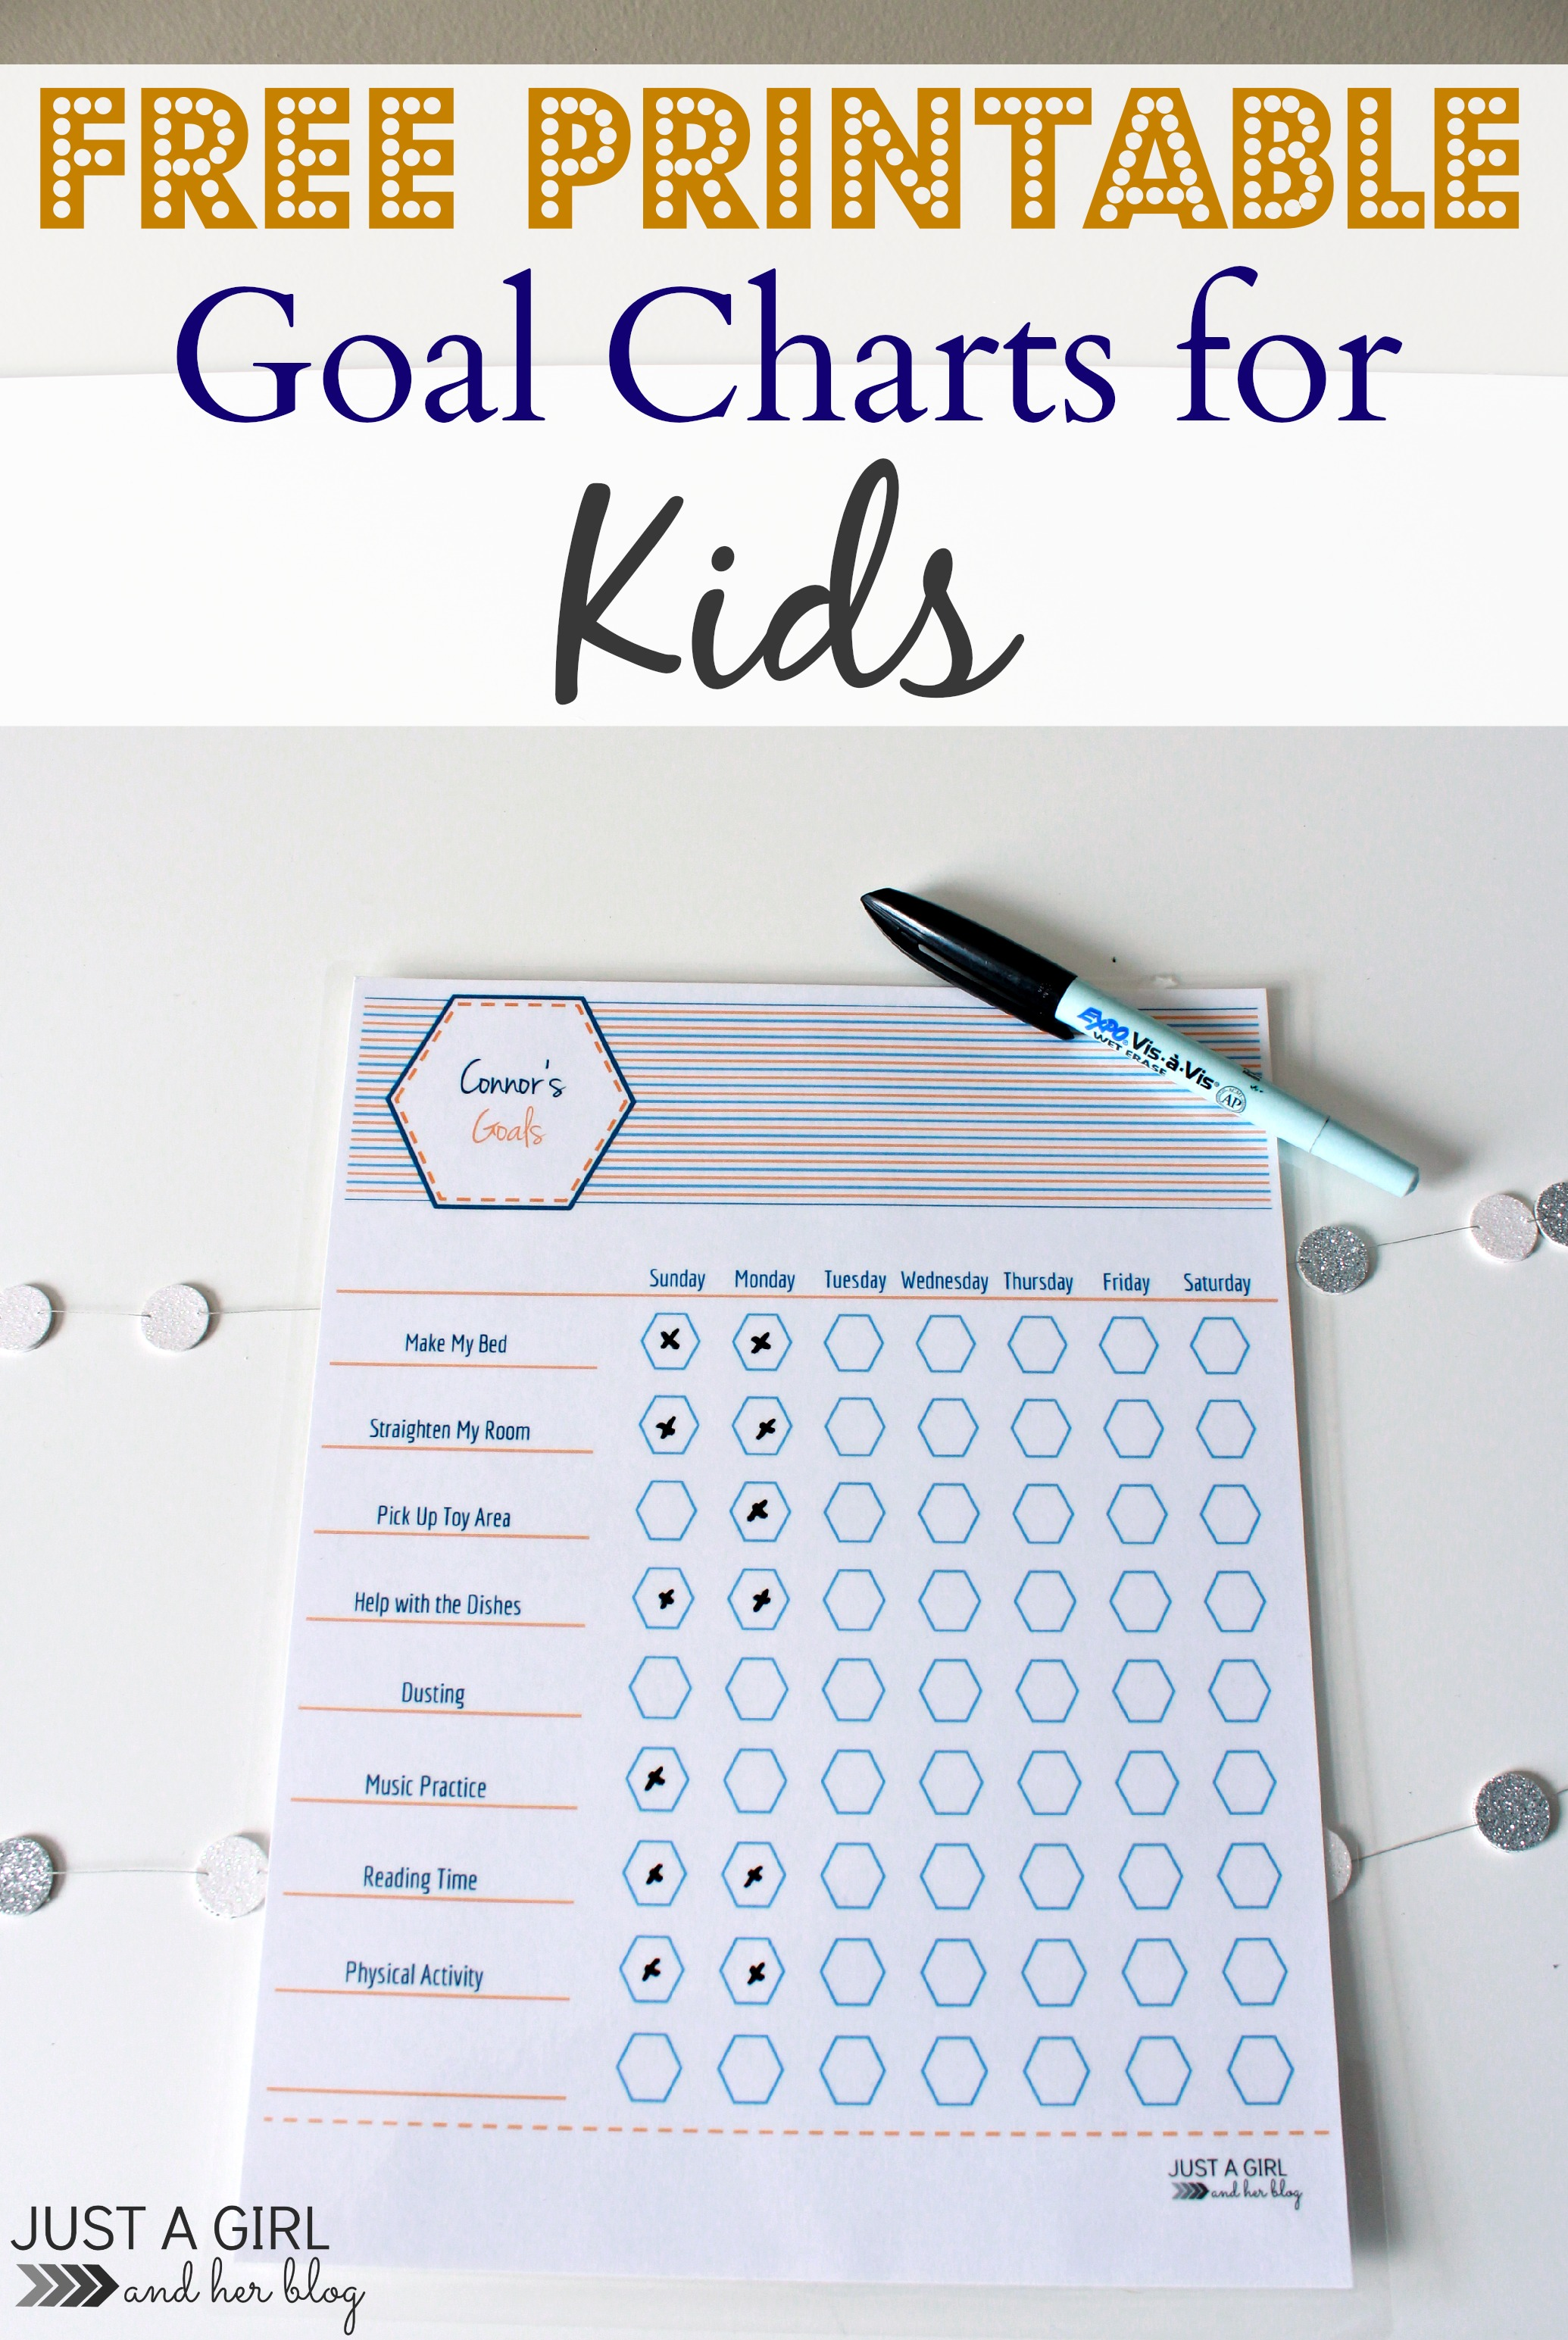 http://www.mom4real.com/wp-content/uploads/2014/01/Free-Printable-Goal-Charts-for-Kids.jpg